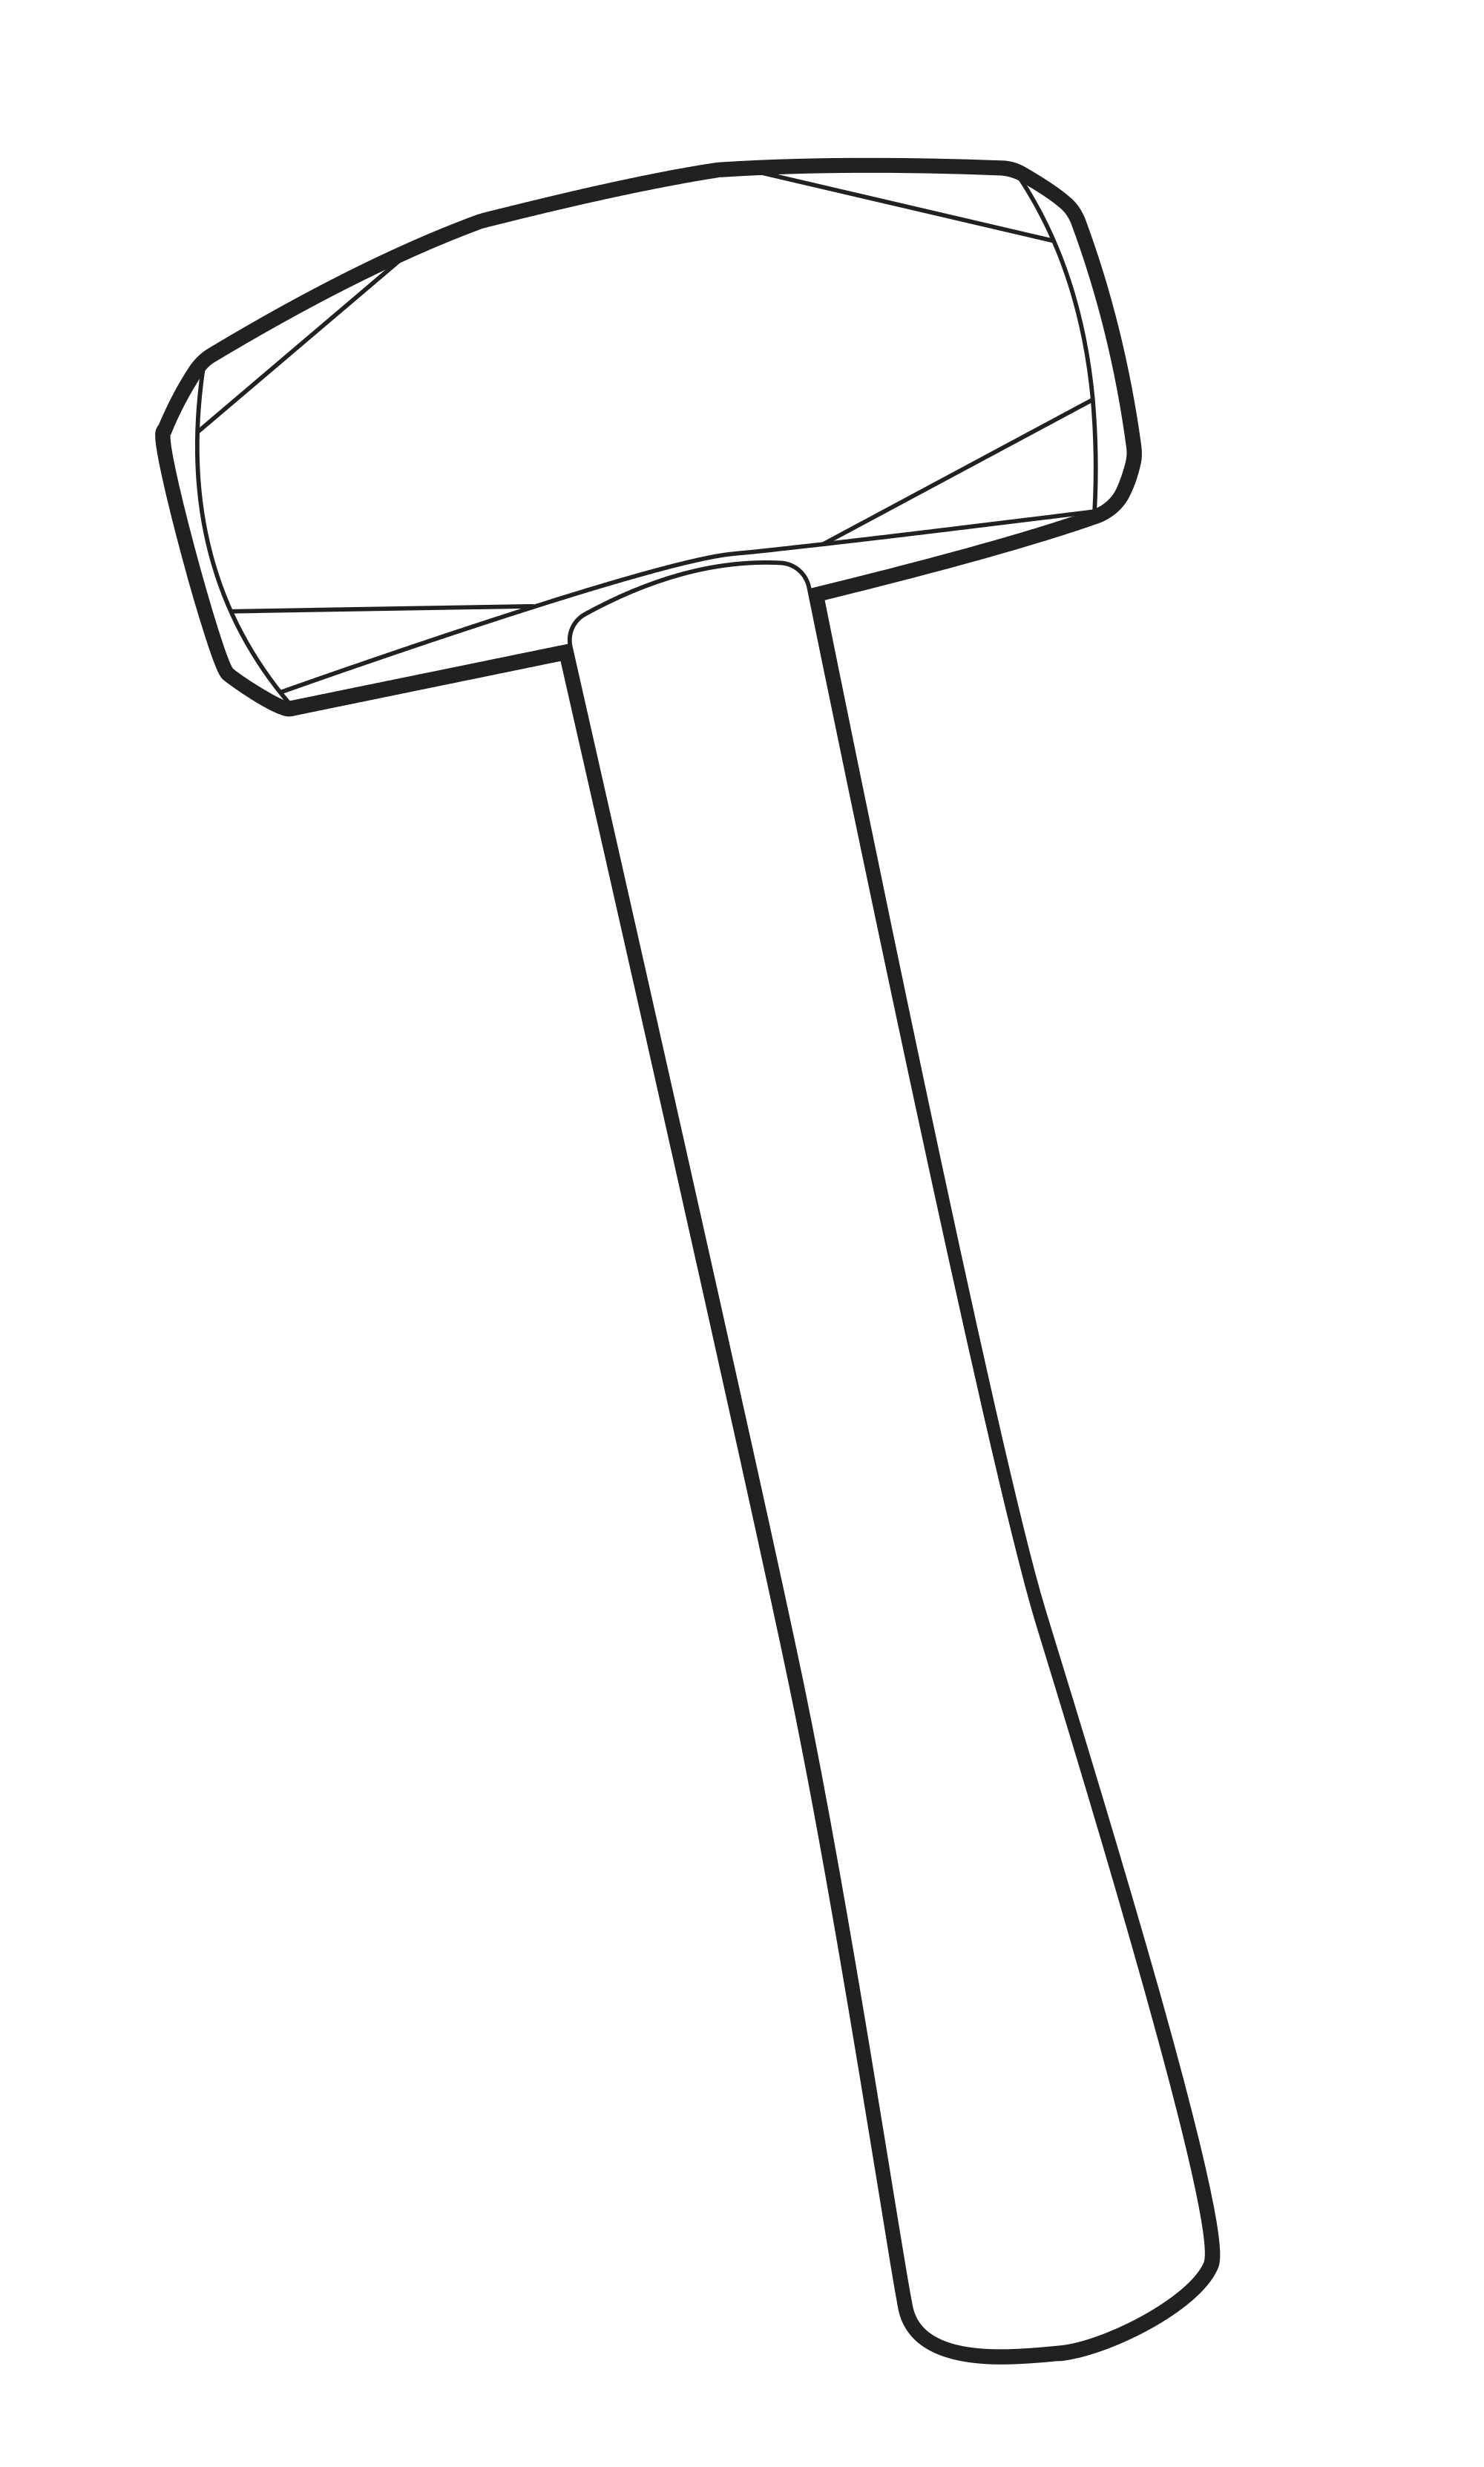 Weapon drawing hammer. At getdrawings com free